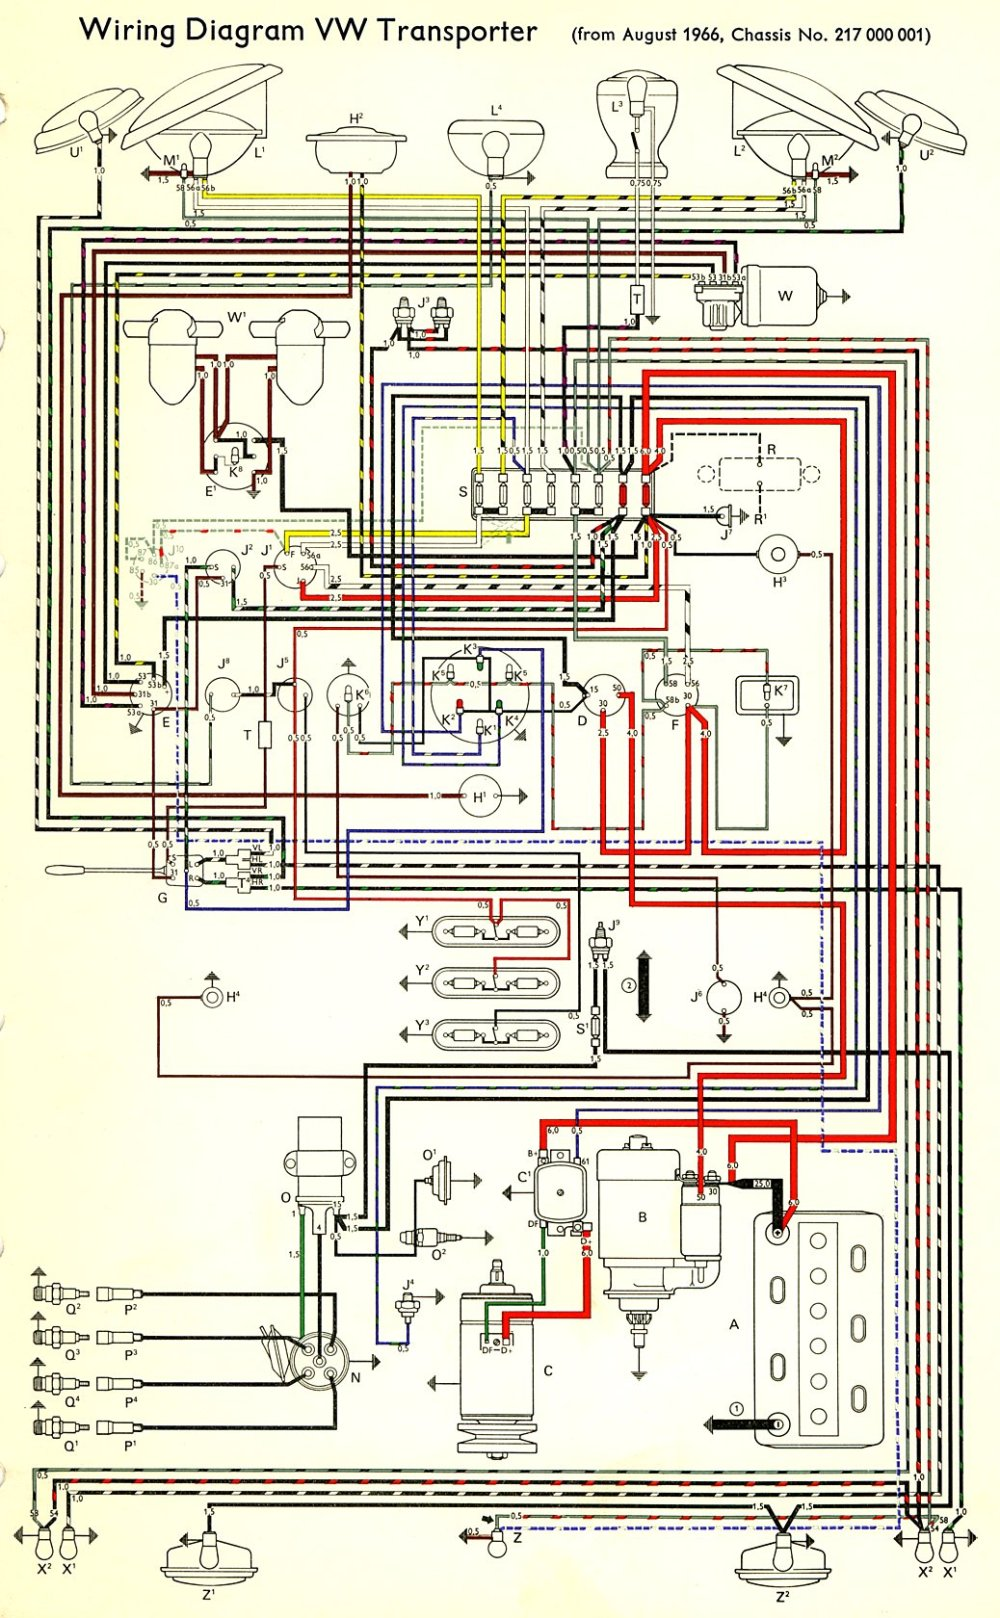 medium resolution of 1967 vw bus wiring diagram wiring diagram third level vw distributor diagram 1967 vw bus wiring